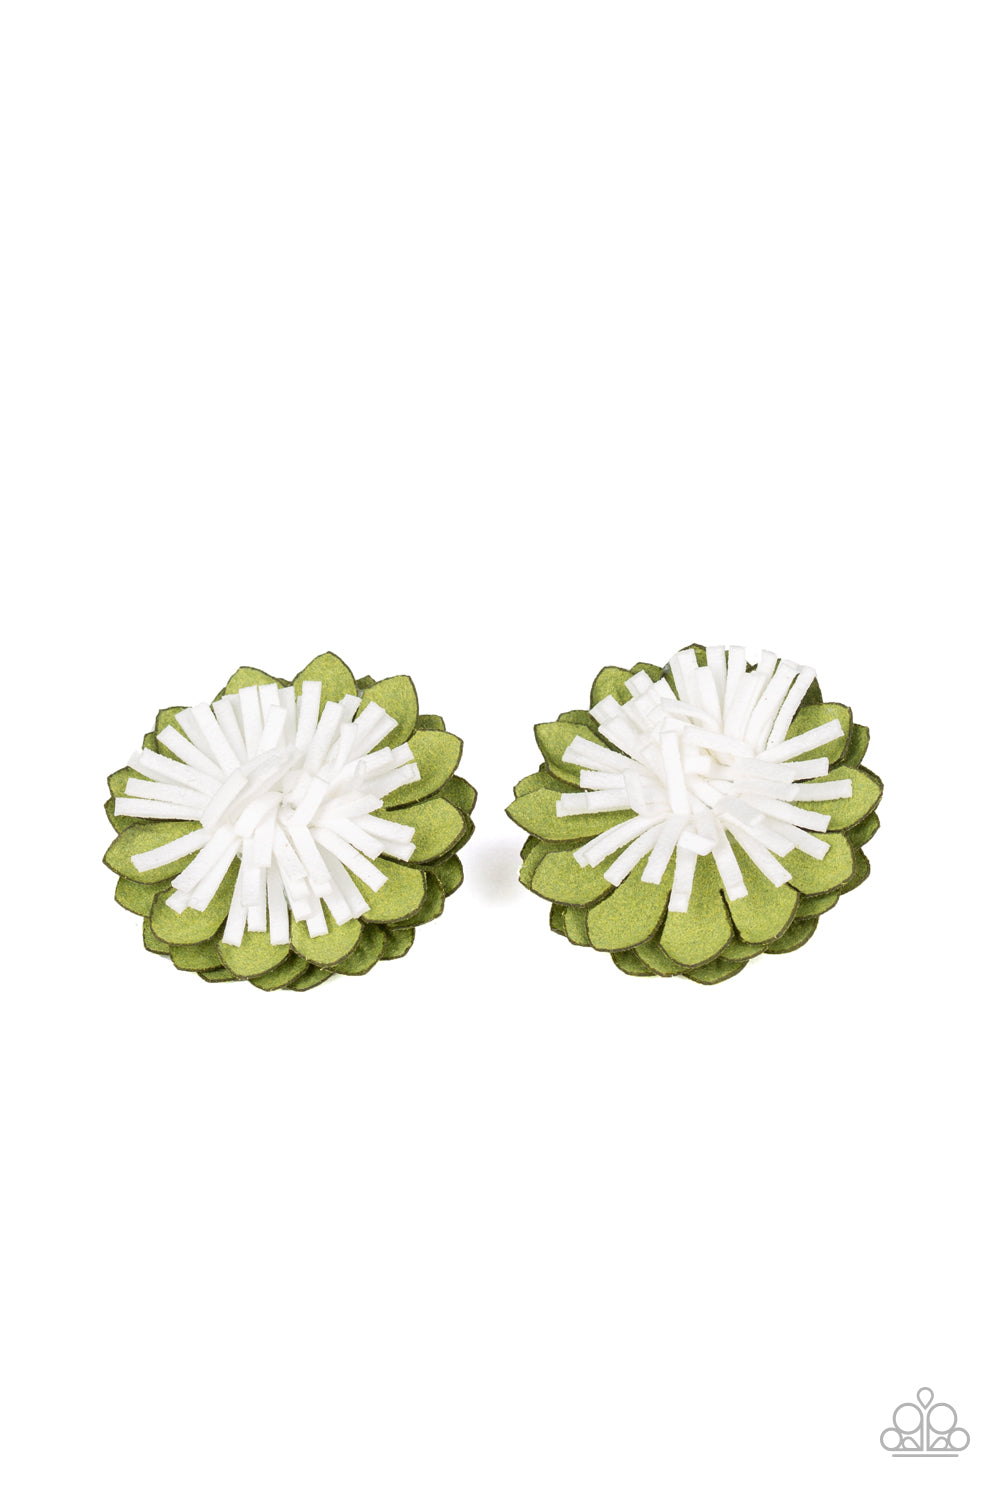 Blooming Bliss - Green Hair Clips - SavvyChicksJewelry